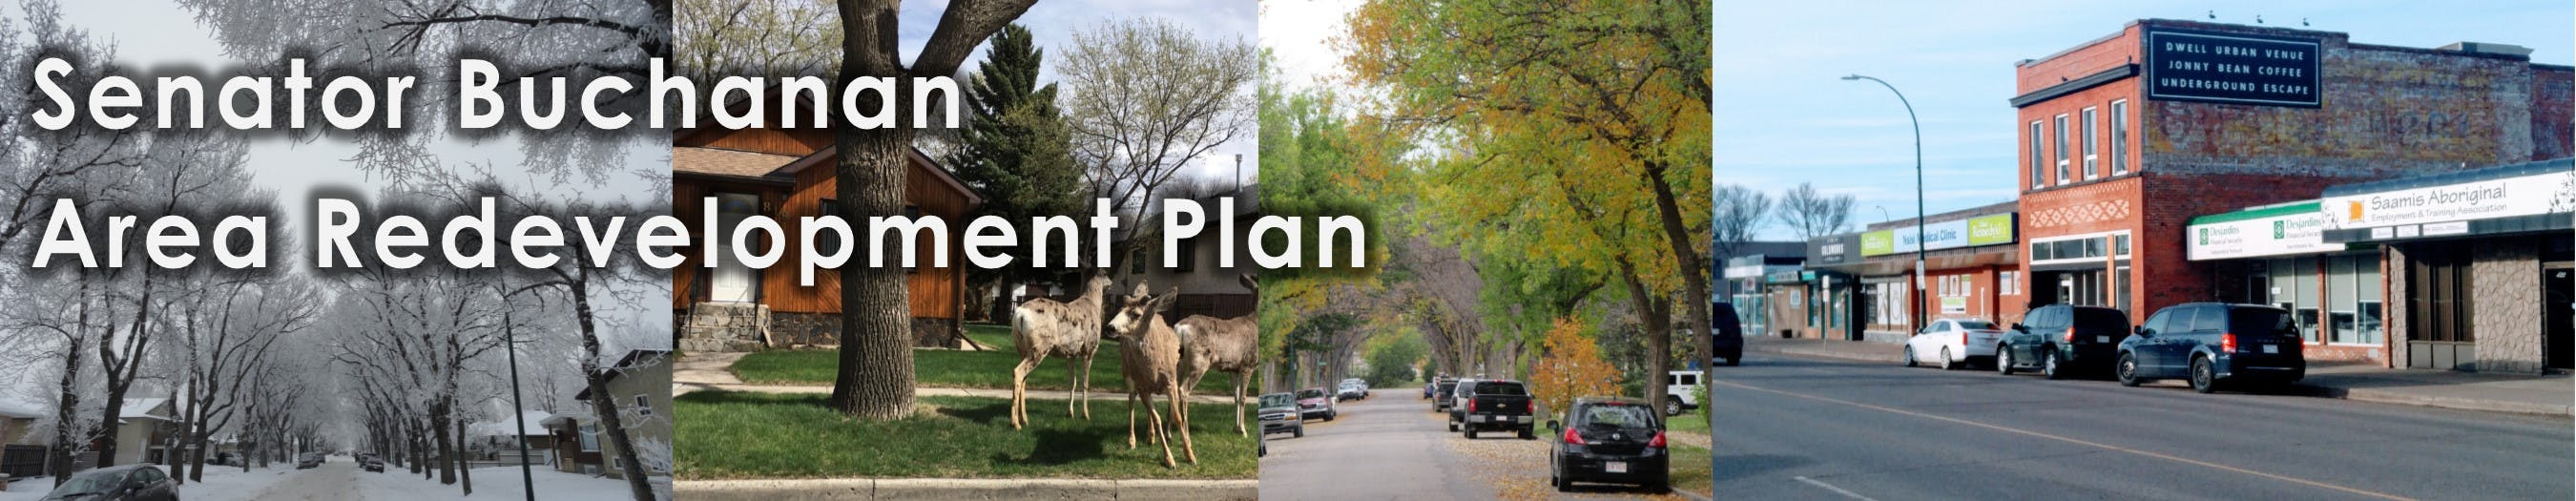 Senator Buchanan Area Redevelopment Plan banner